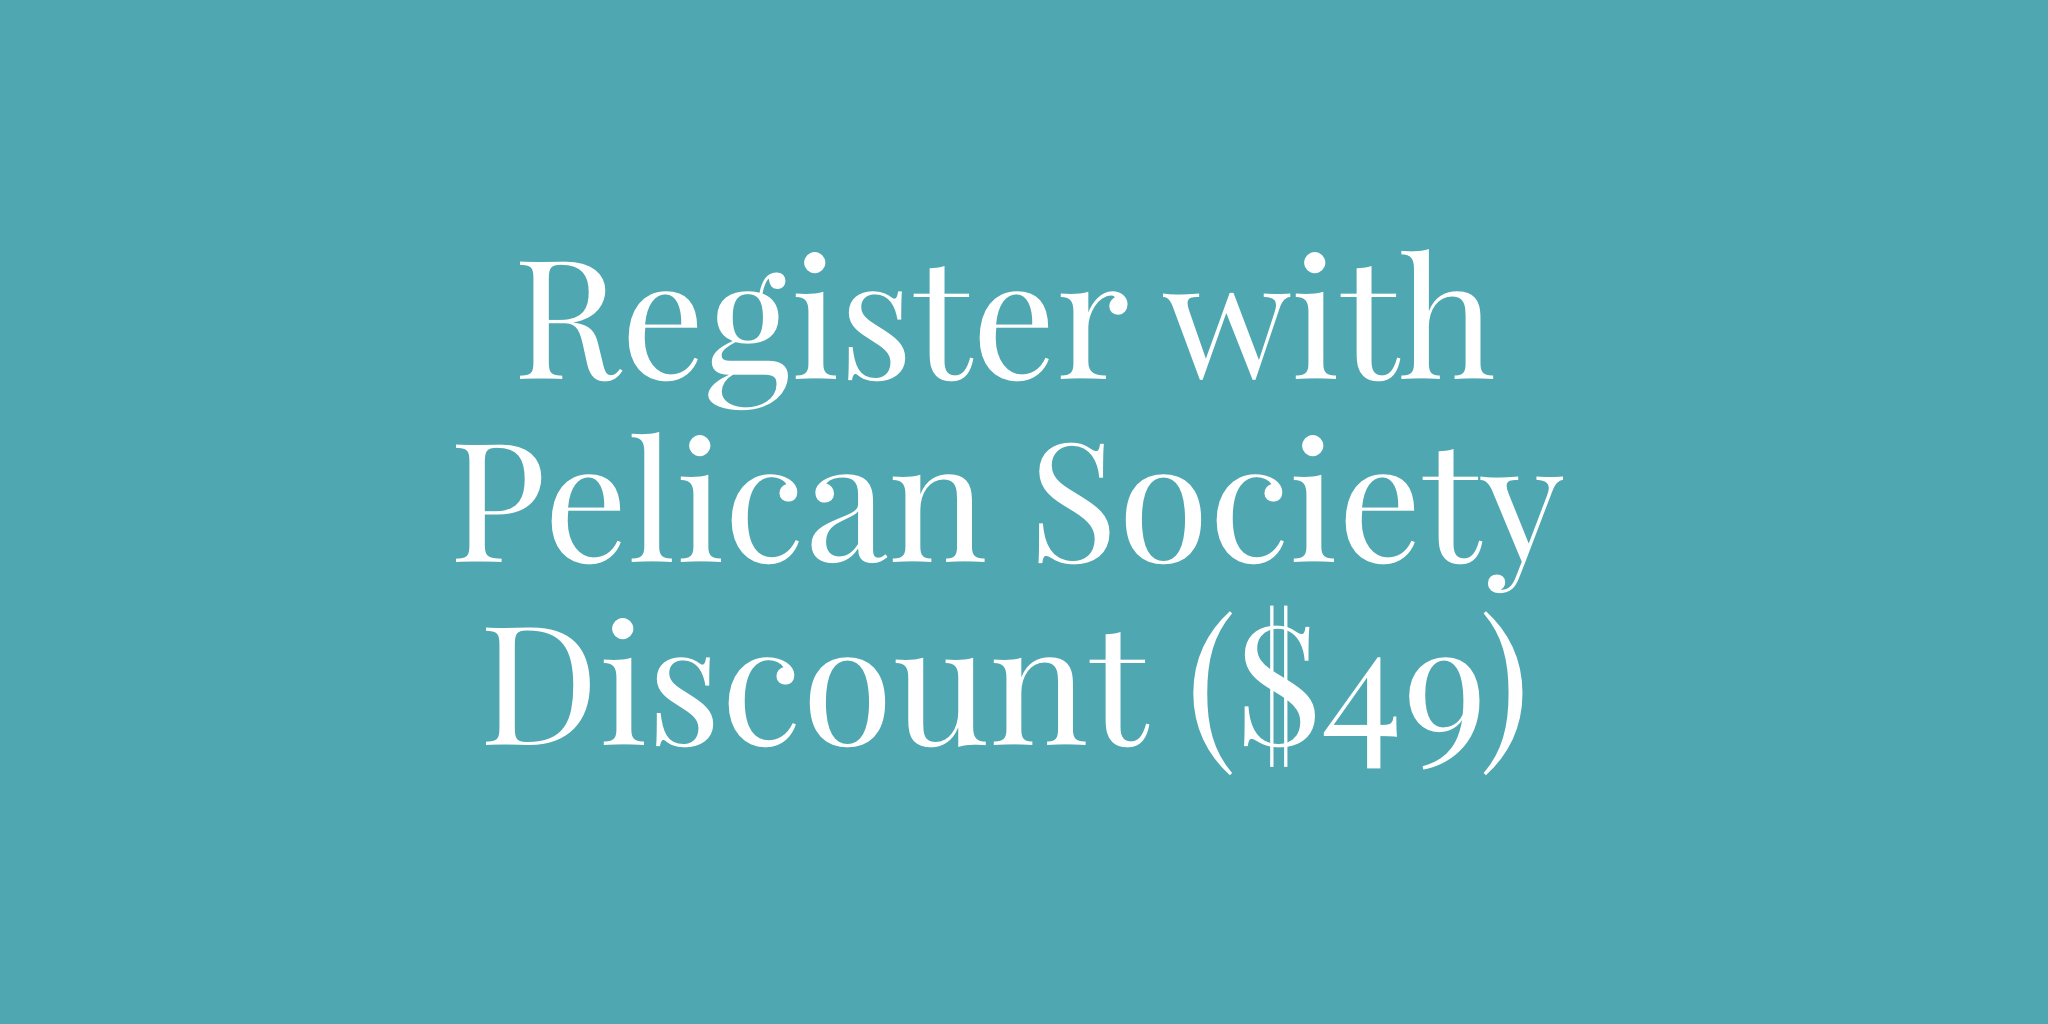 Those enrolled in our membership program, the pelican society, will receive a 50% discount on registration.